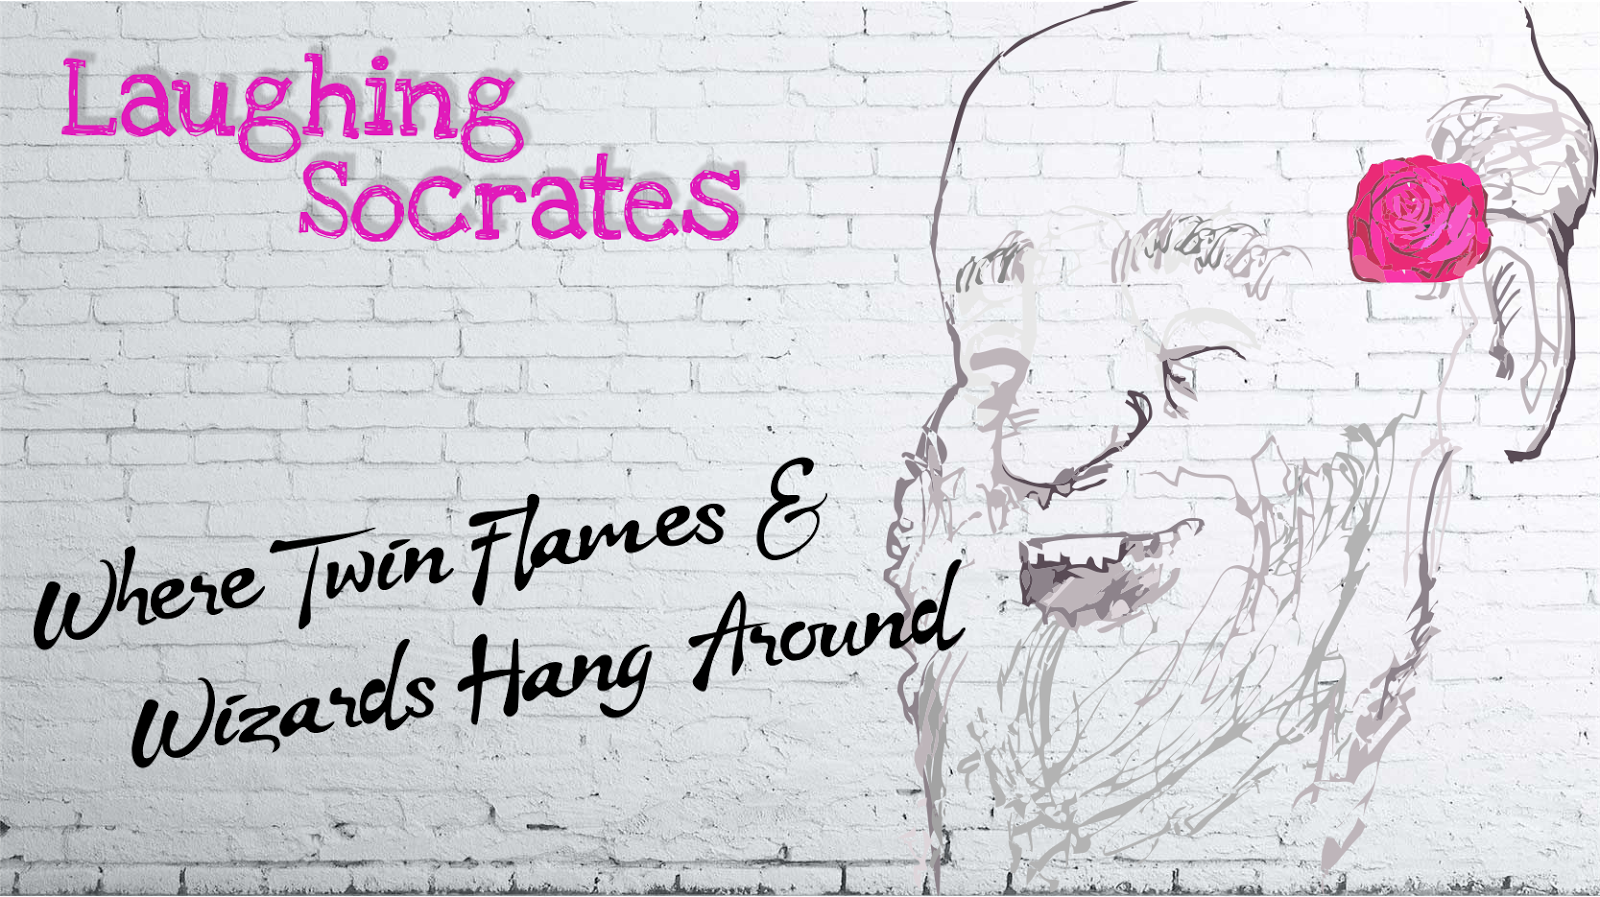 laughing socrates